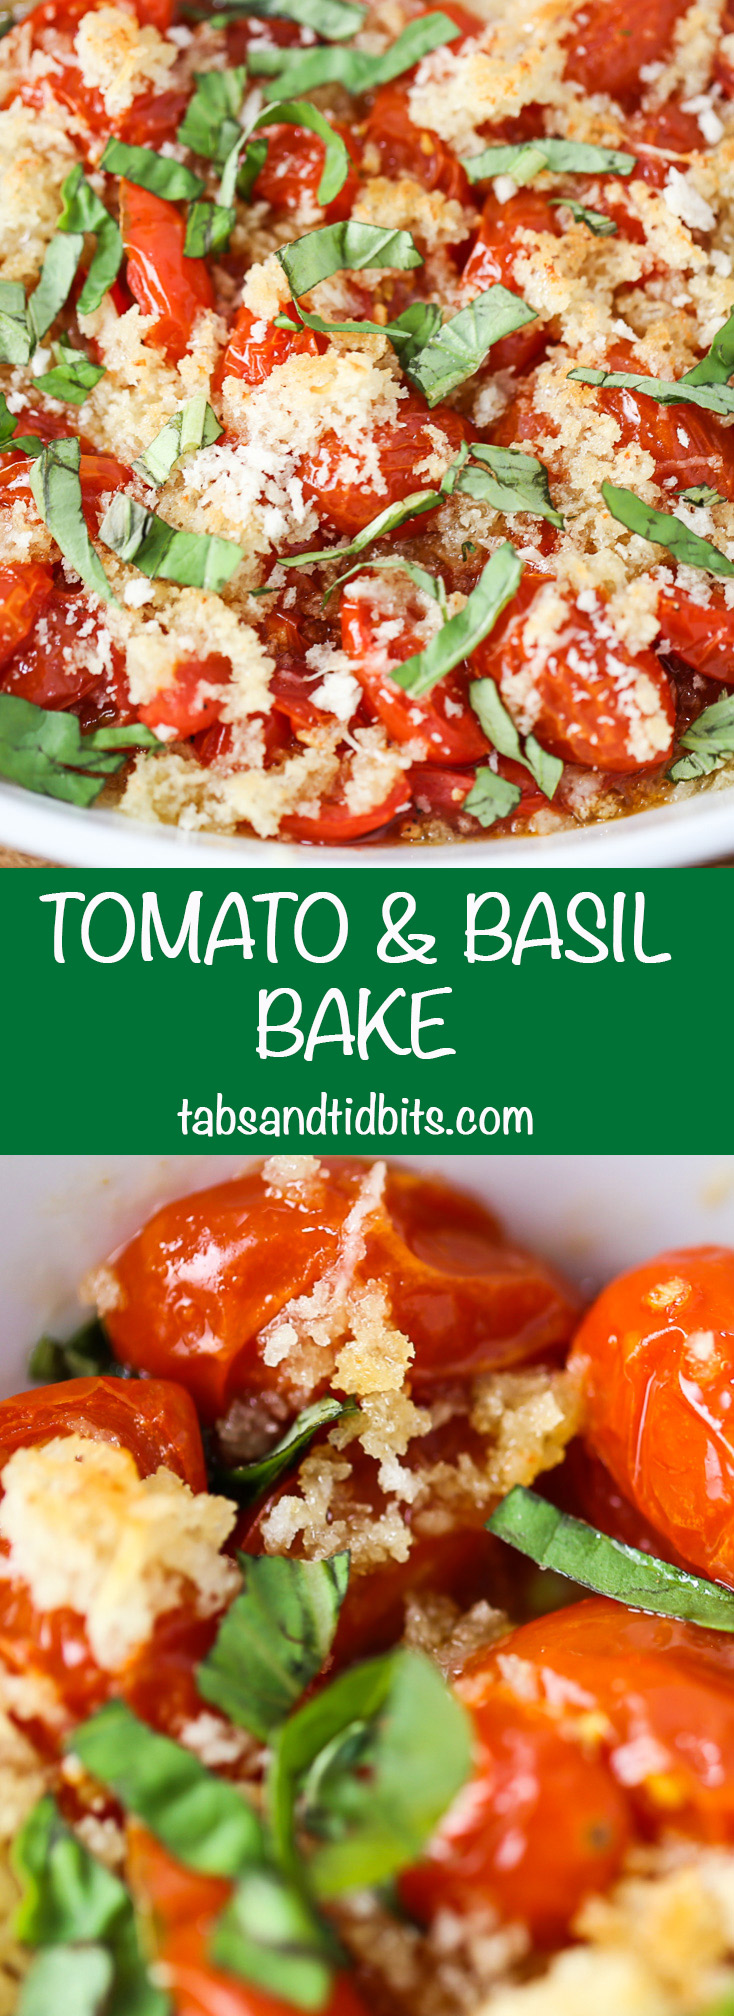 Tomato & Basil Bake - Bright cherry tomatoes and fresh basil topped with a buttery bread crumb topping!